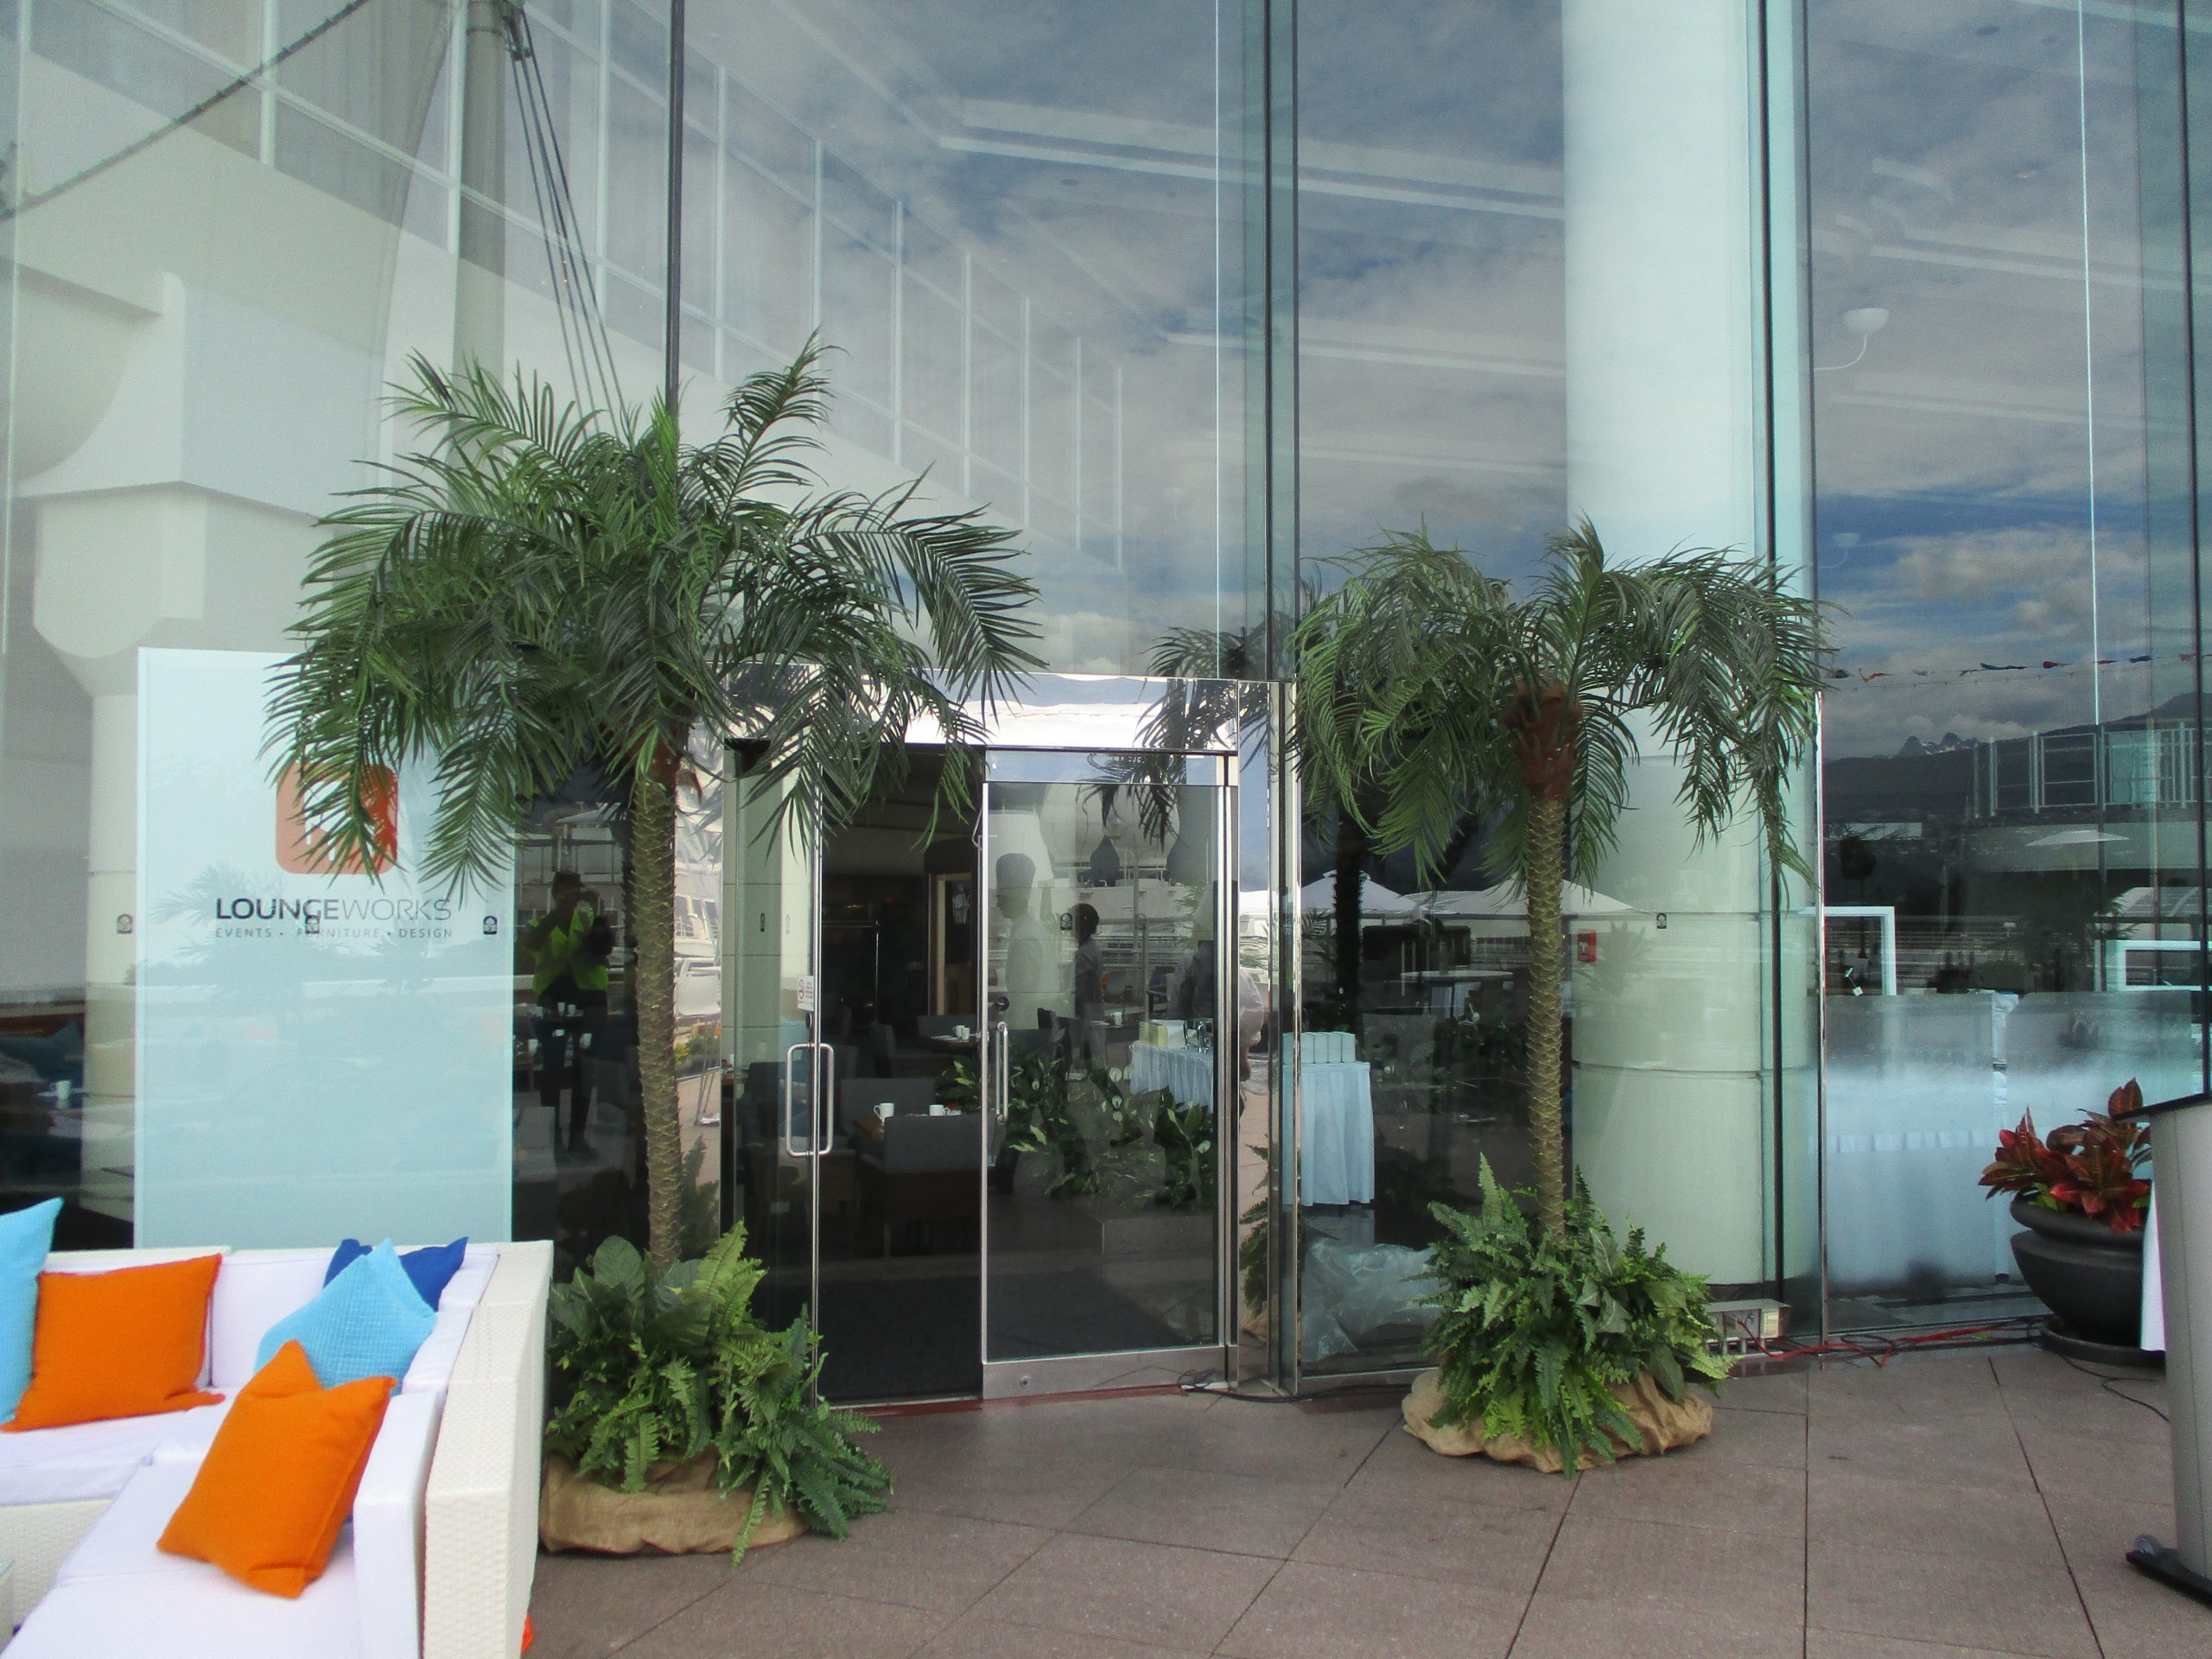 Two tall phoenix palm trees with tropical base gardens flanking door entrance for event